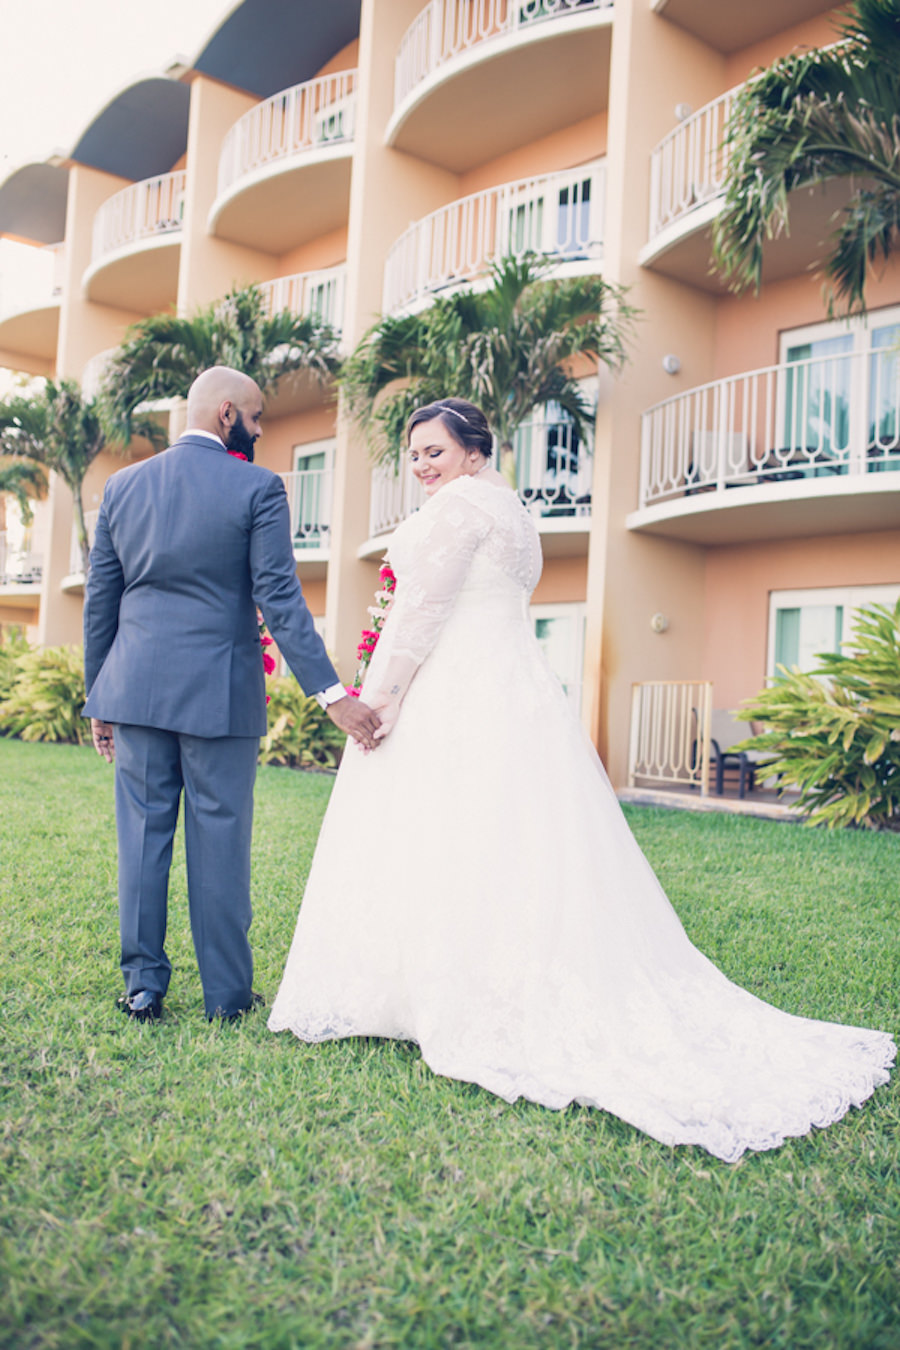 Outdoor Bride and Groom Portrait, Long Sleeve Illusion, V-Neck Lace and Rhinestone Floral Accent Wedding Dress, Groom in Grey Suit with Rose Boutonniere   Tampa Bay Wedding Photographer Luxe Light Photography